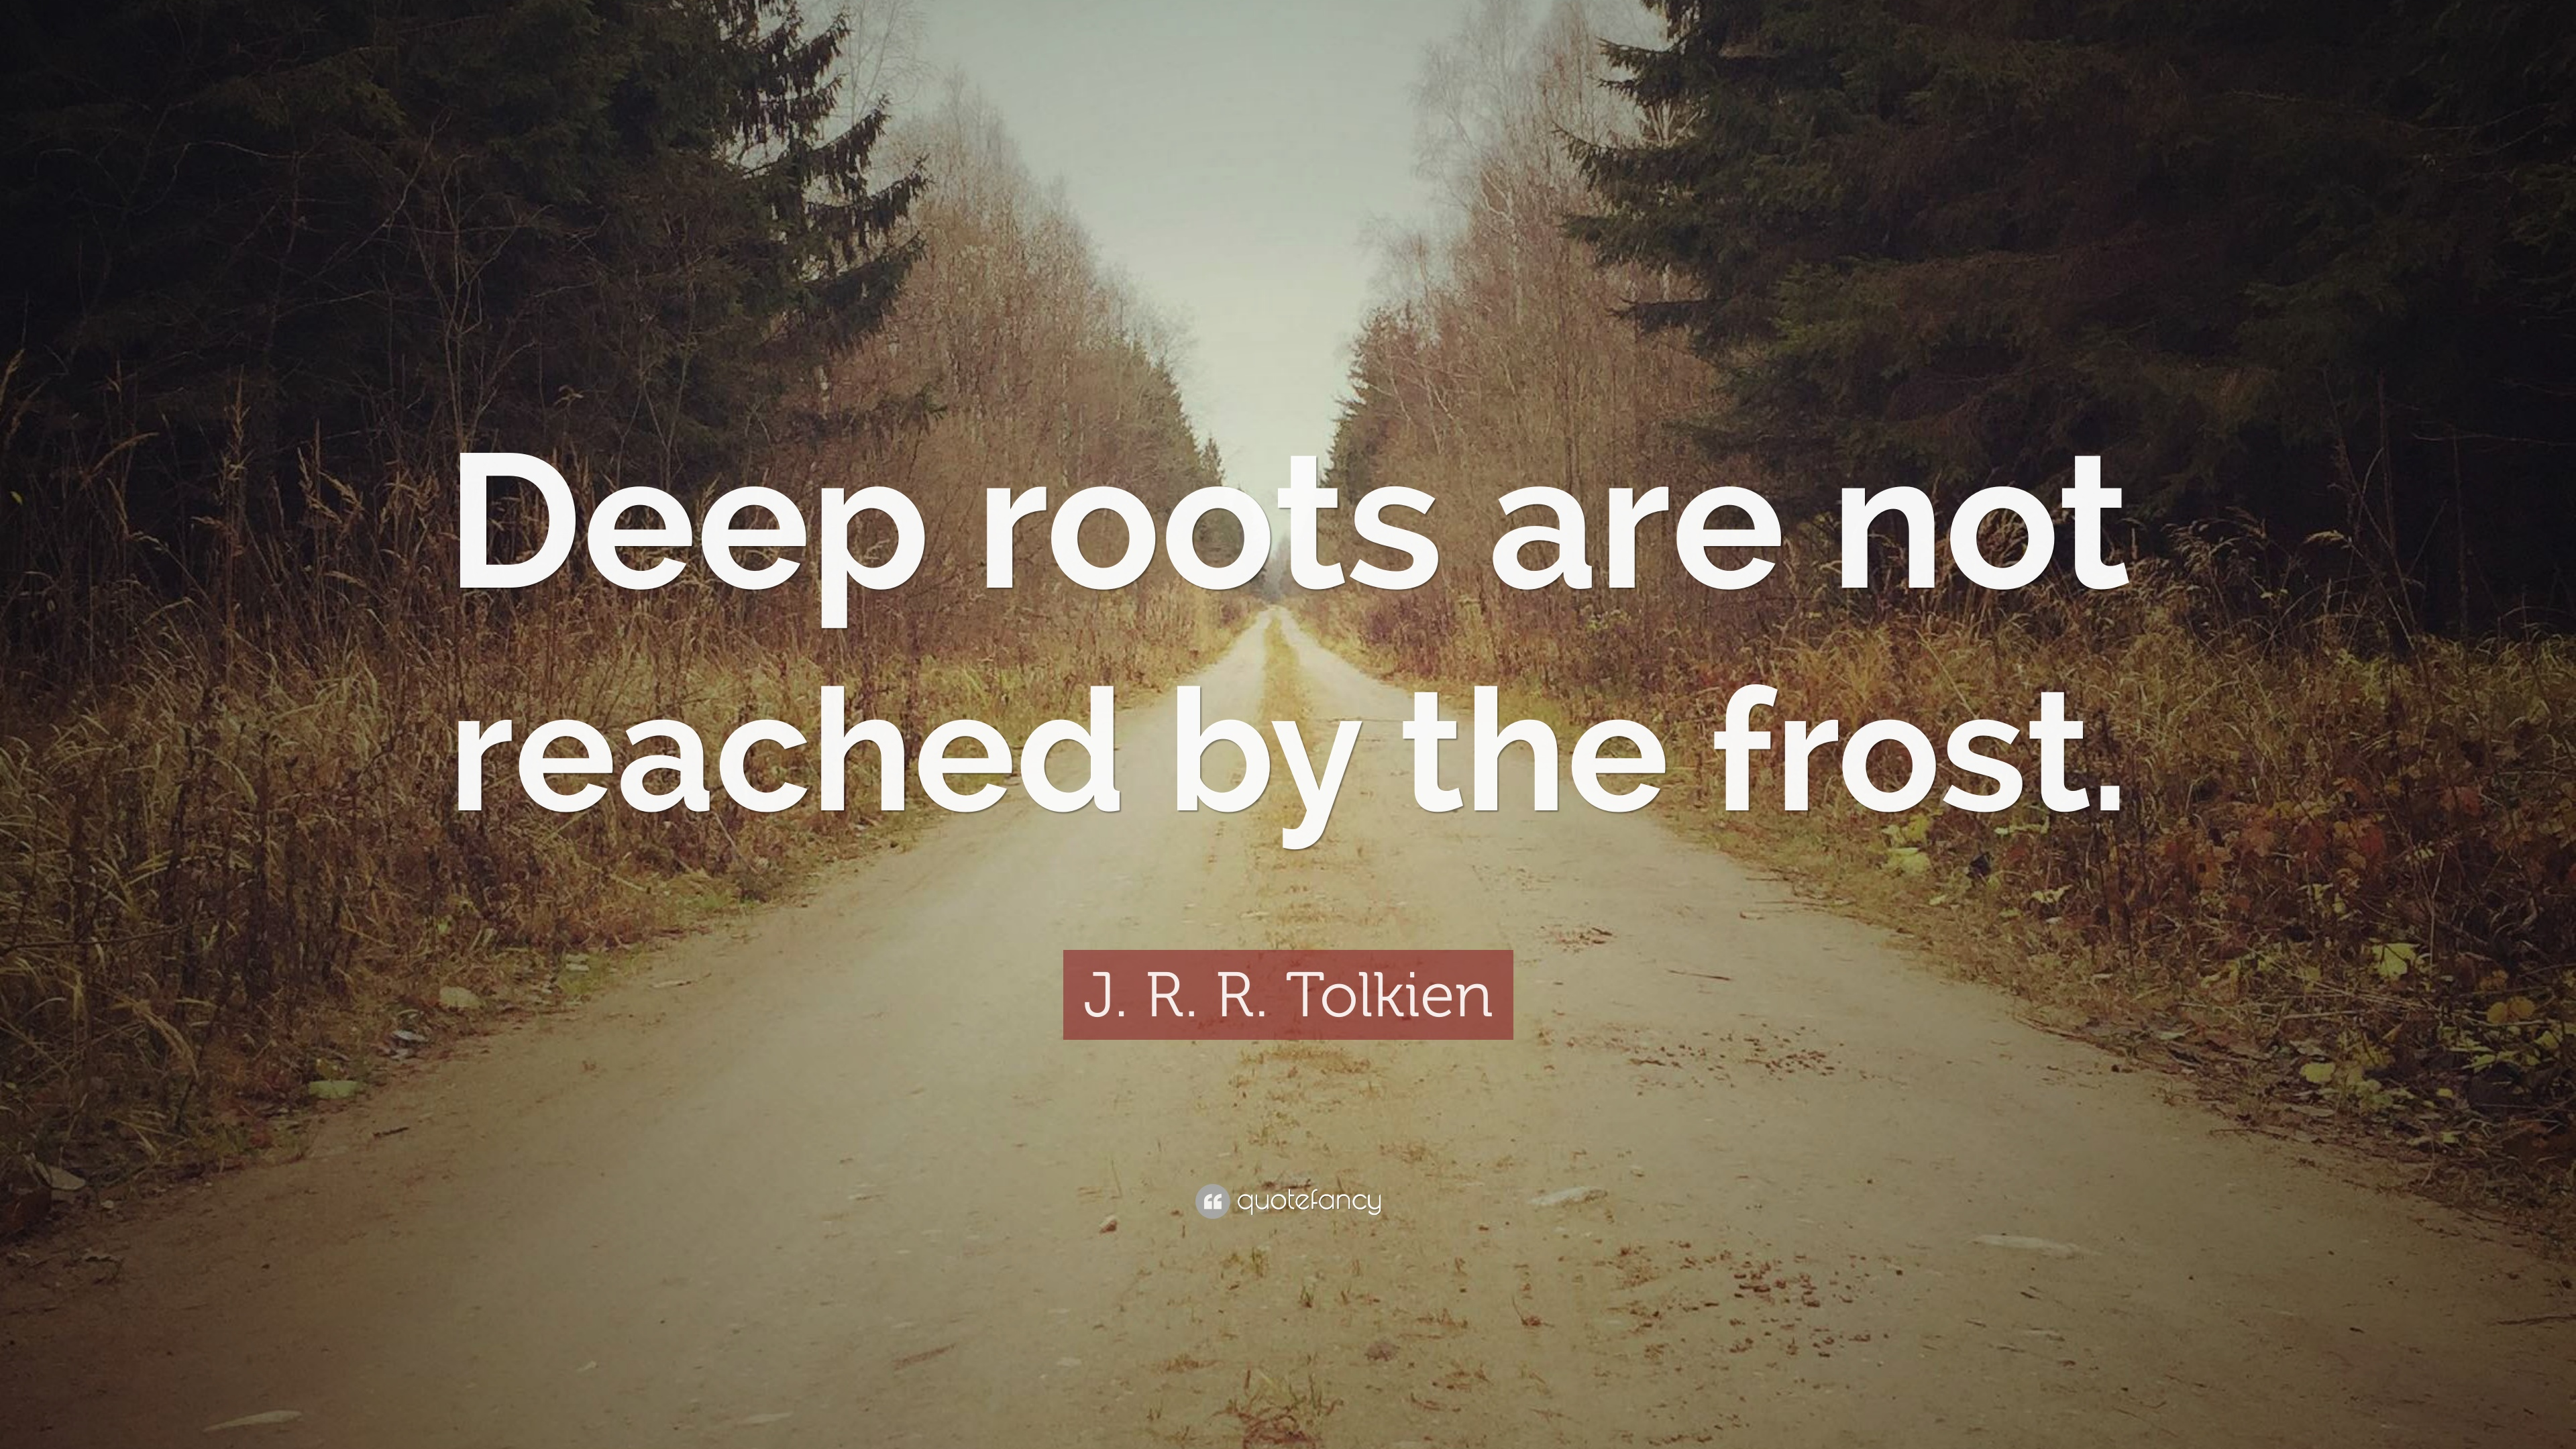 """Risultati immagini per """"Deep roots are not reached by the frost."""""""